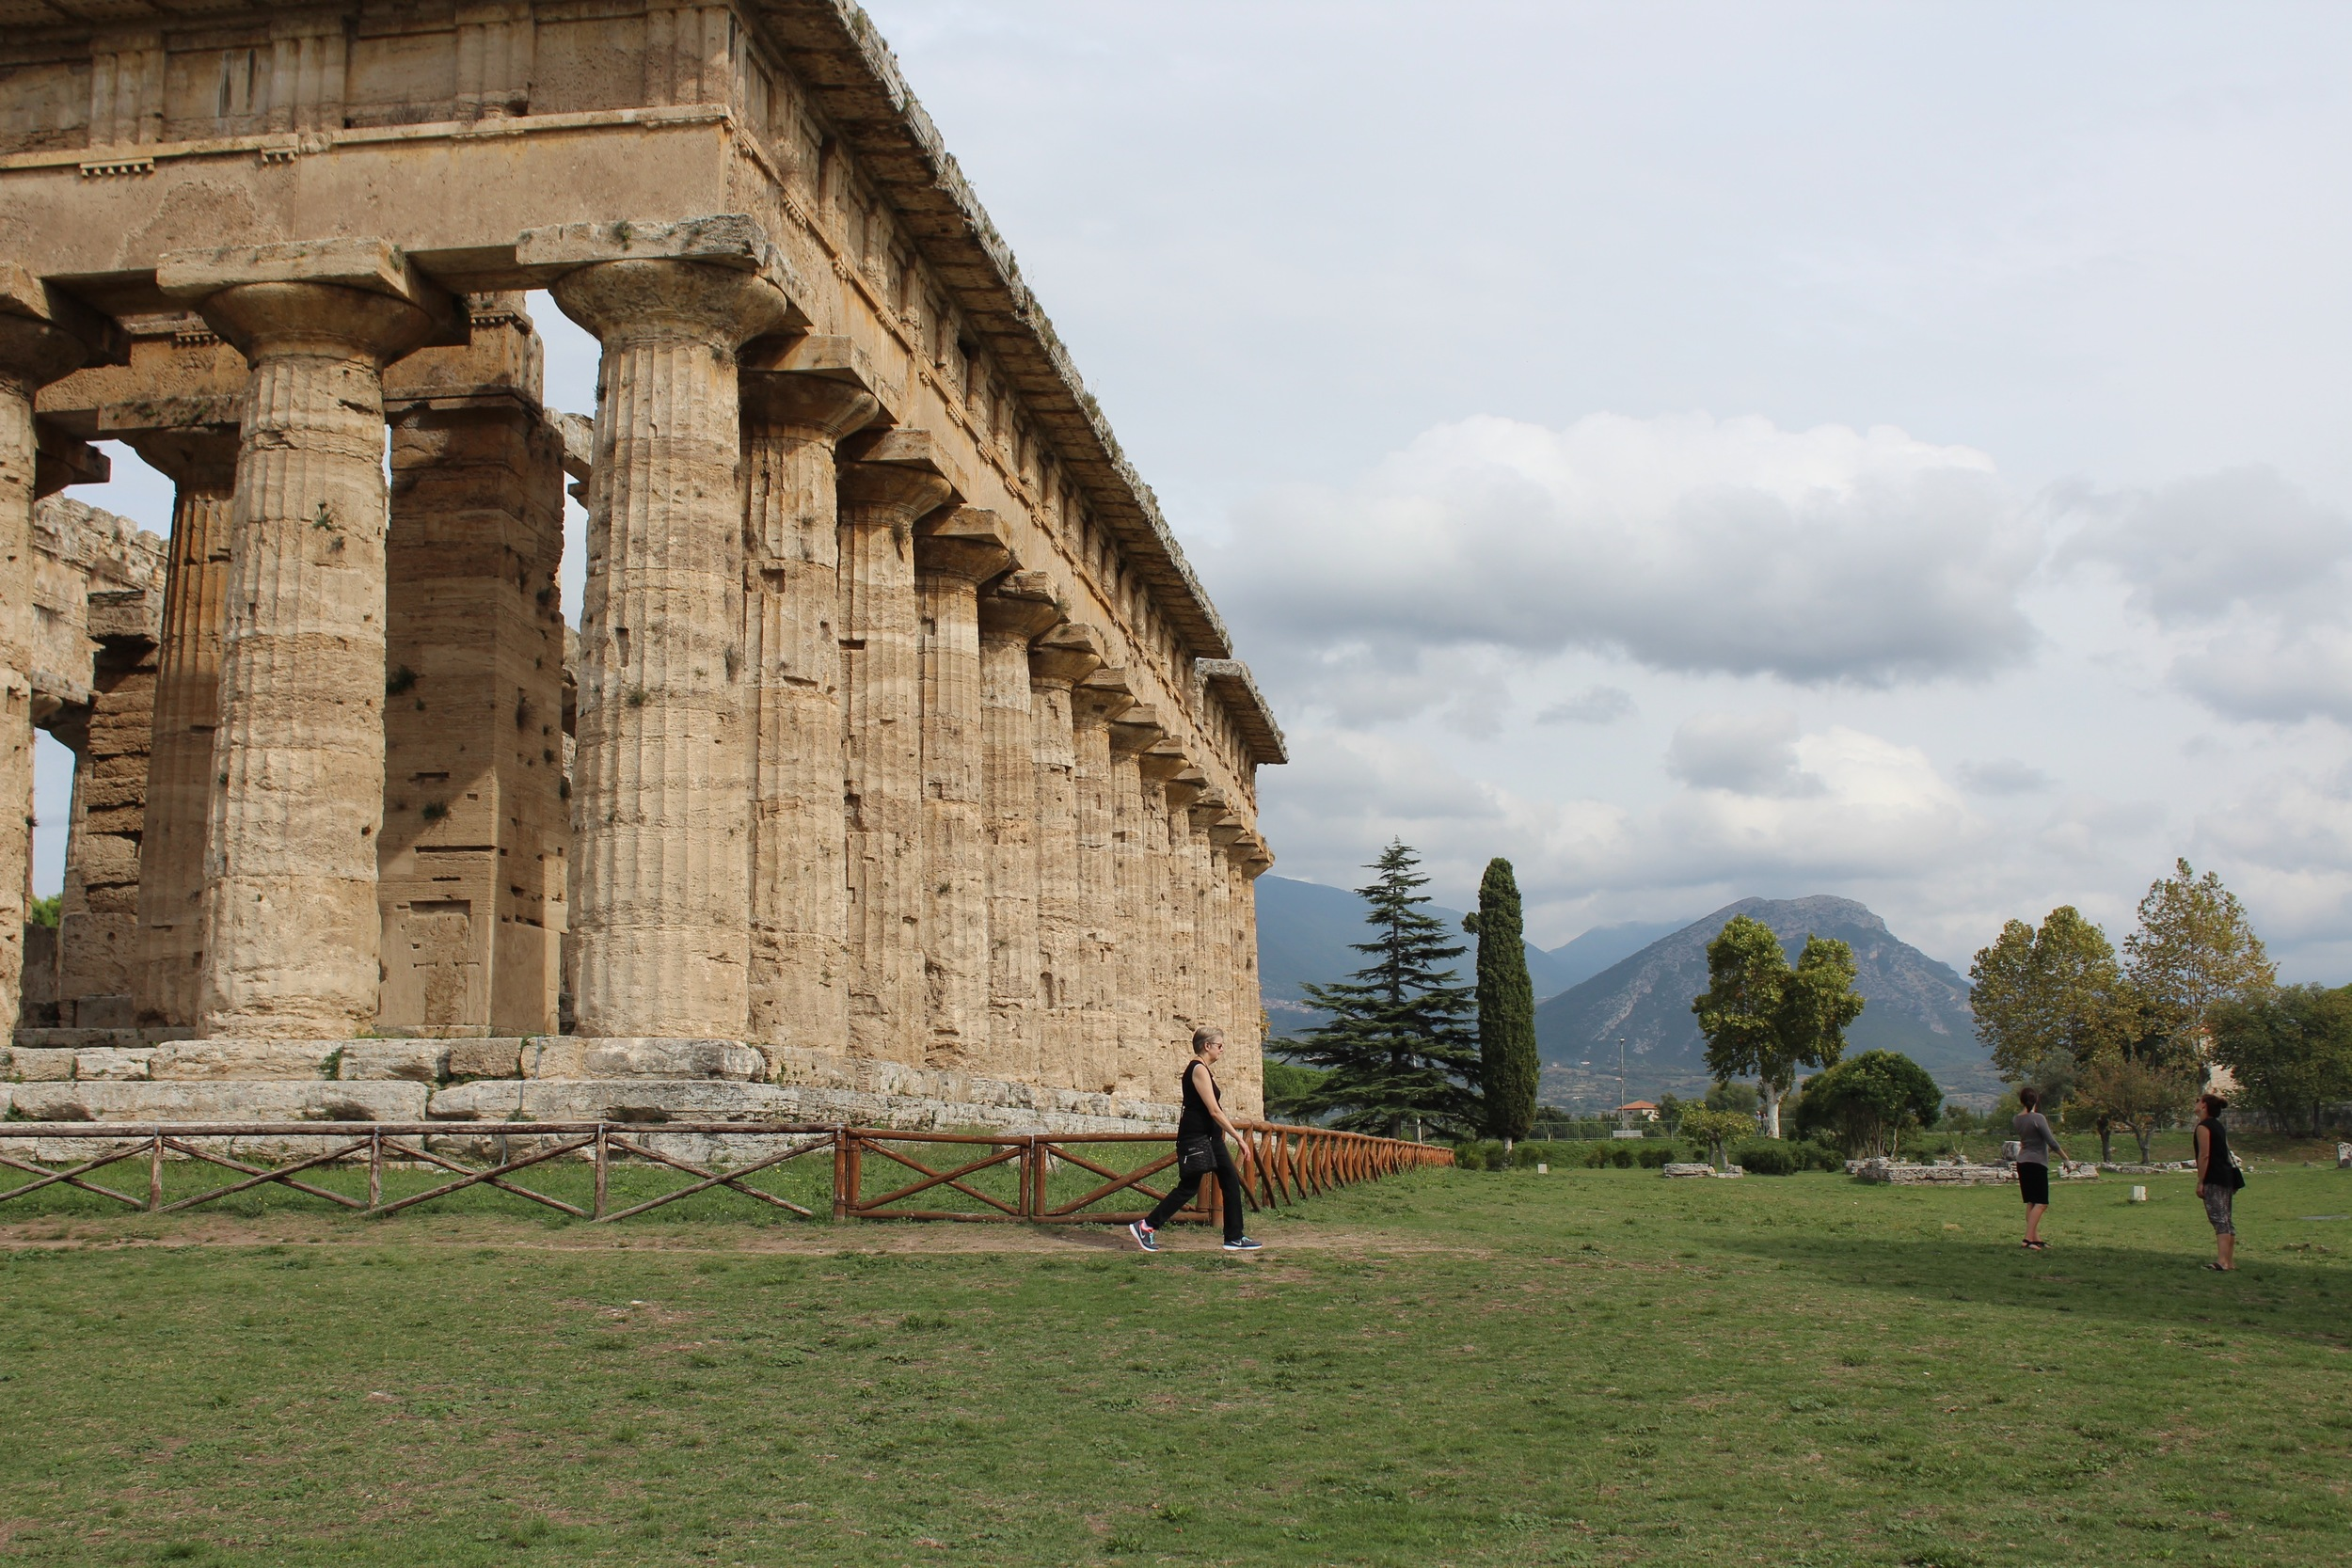 The 6th century BCE temple complex at Paestum